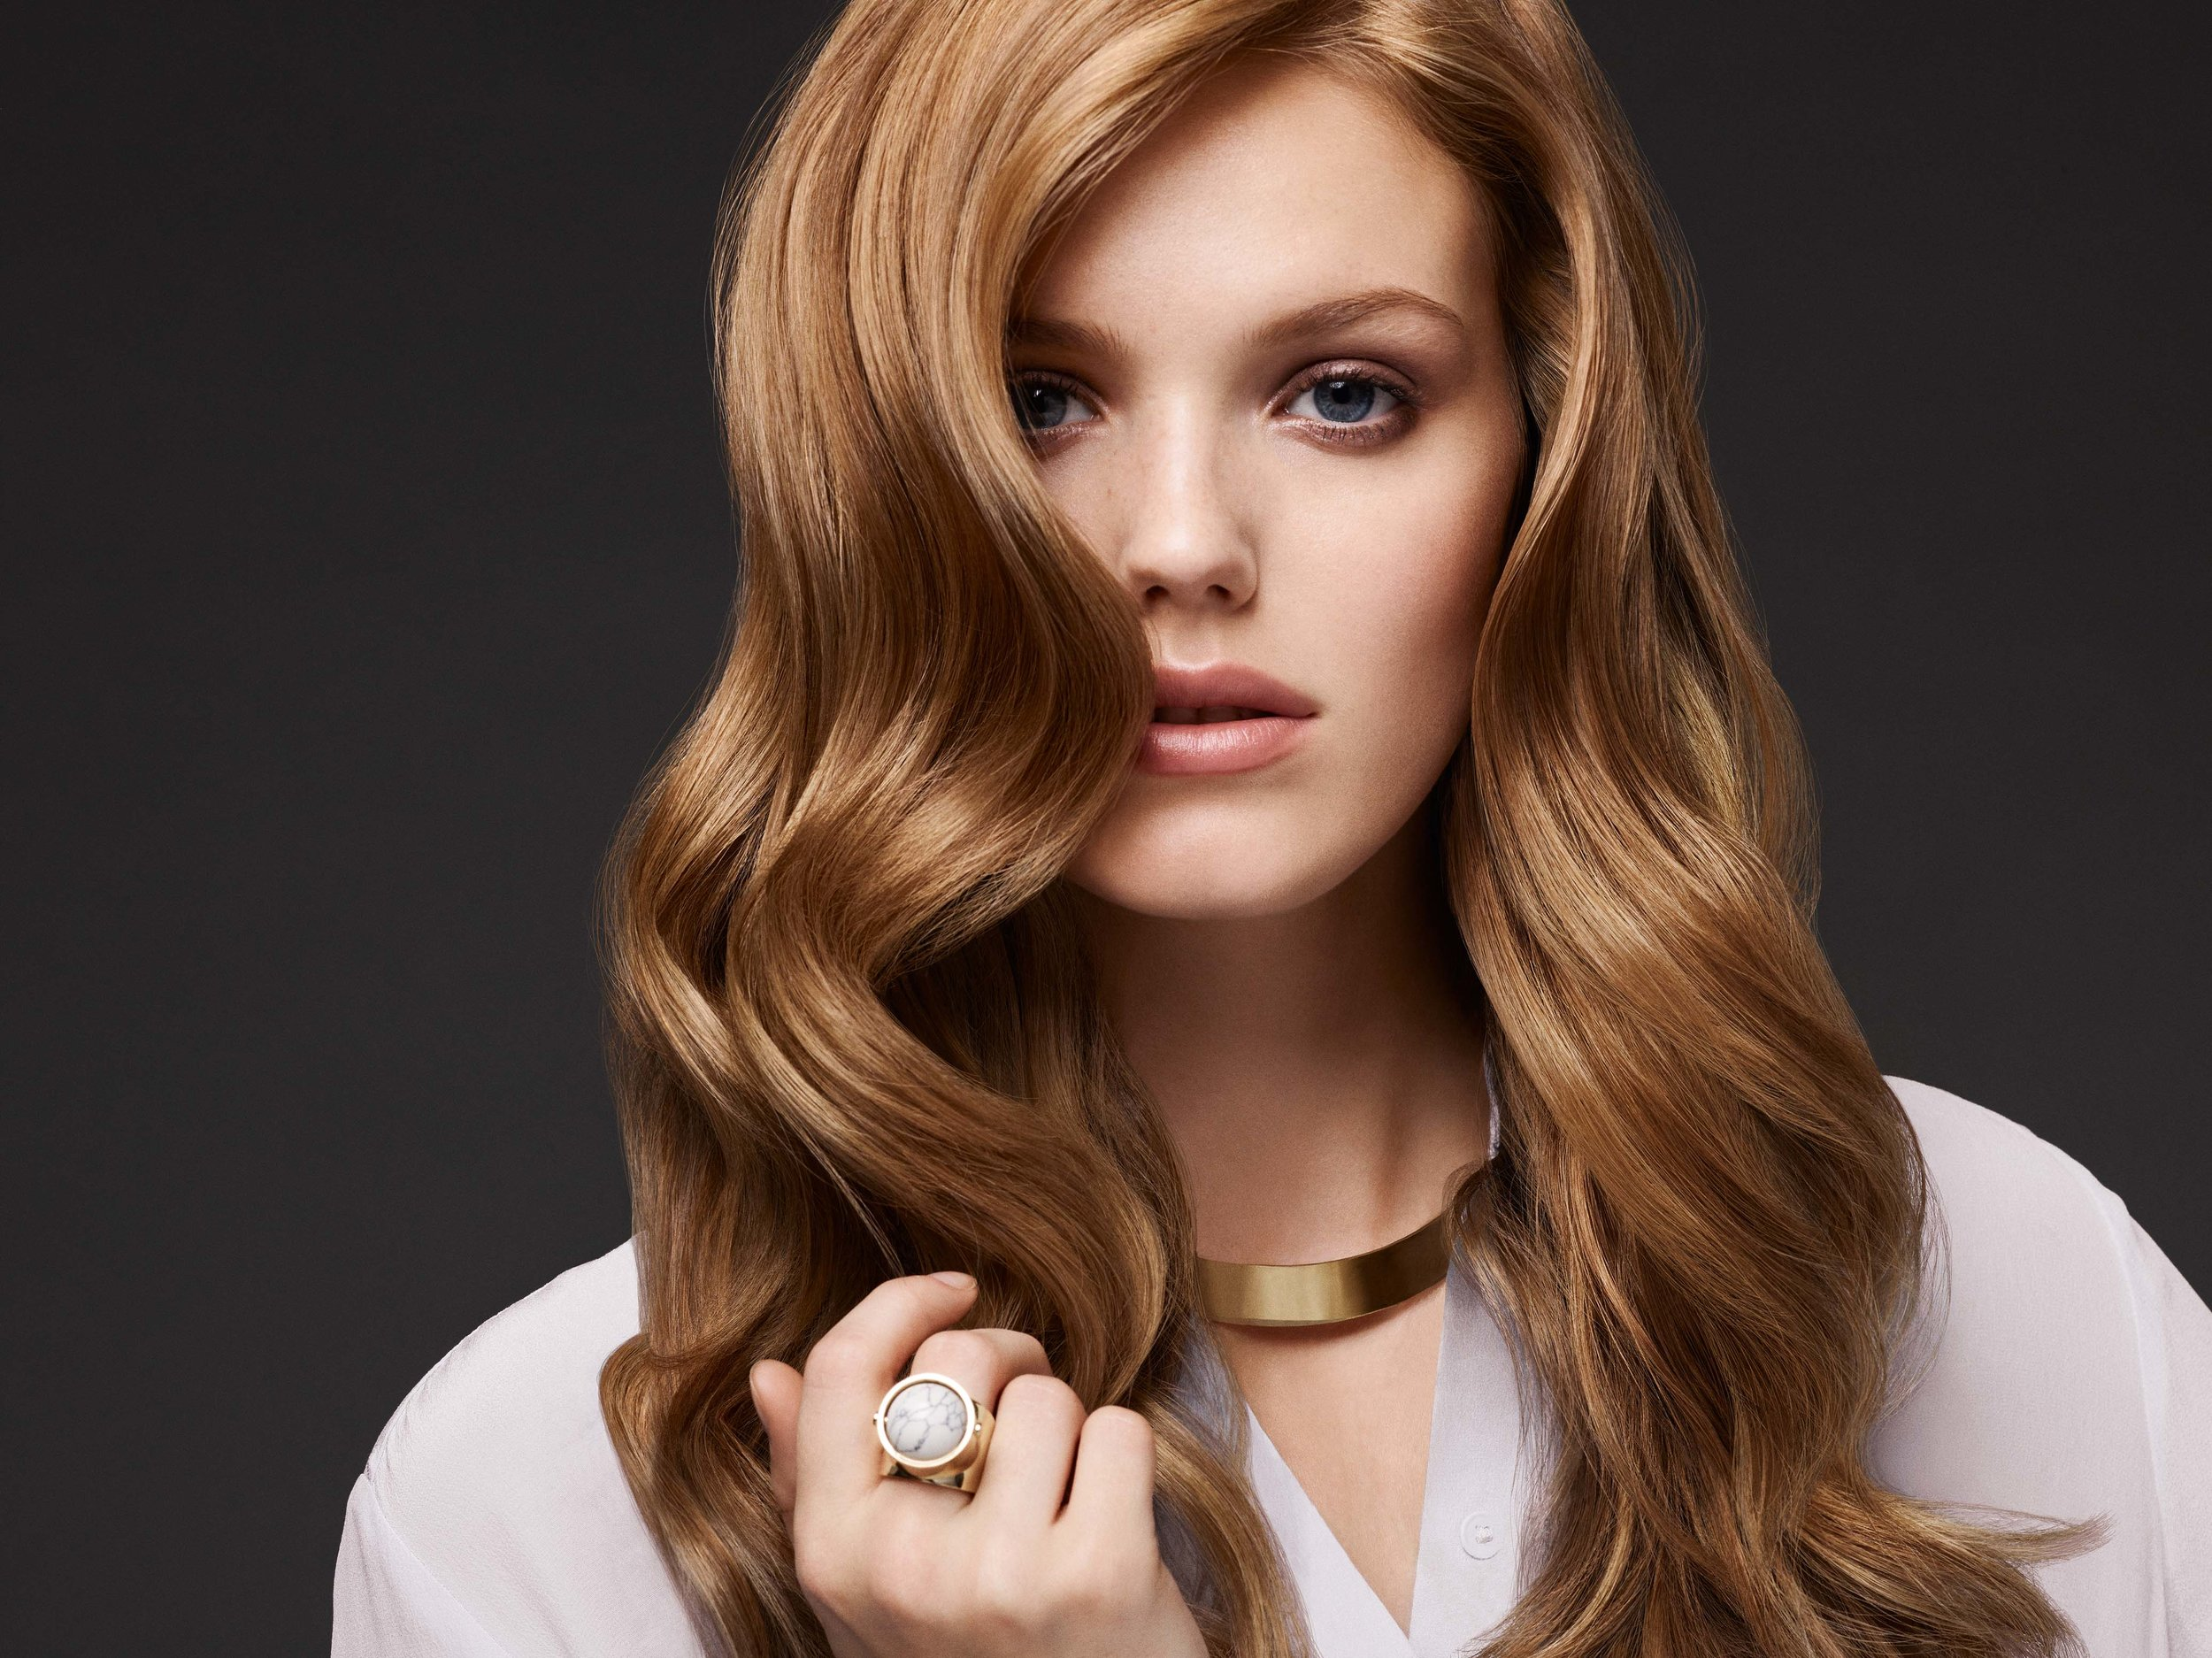 Salon Hair Salon W Oklahoma City Edmond